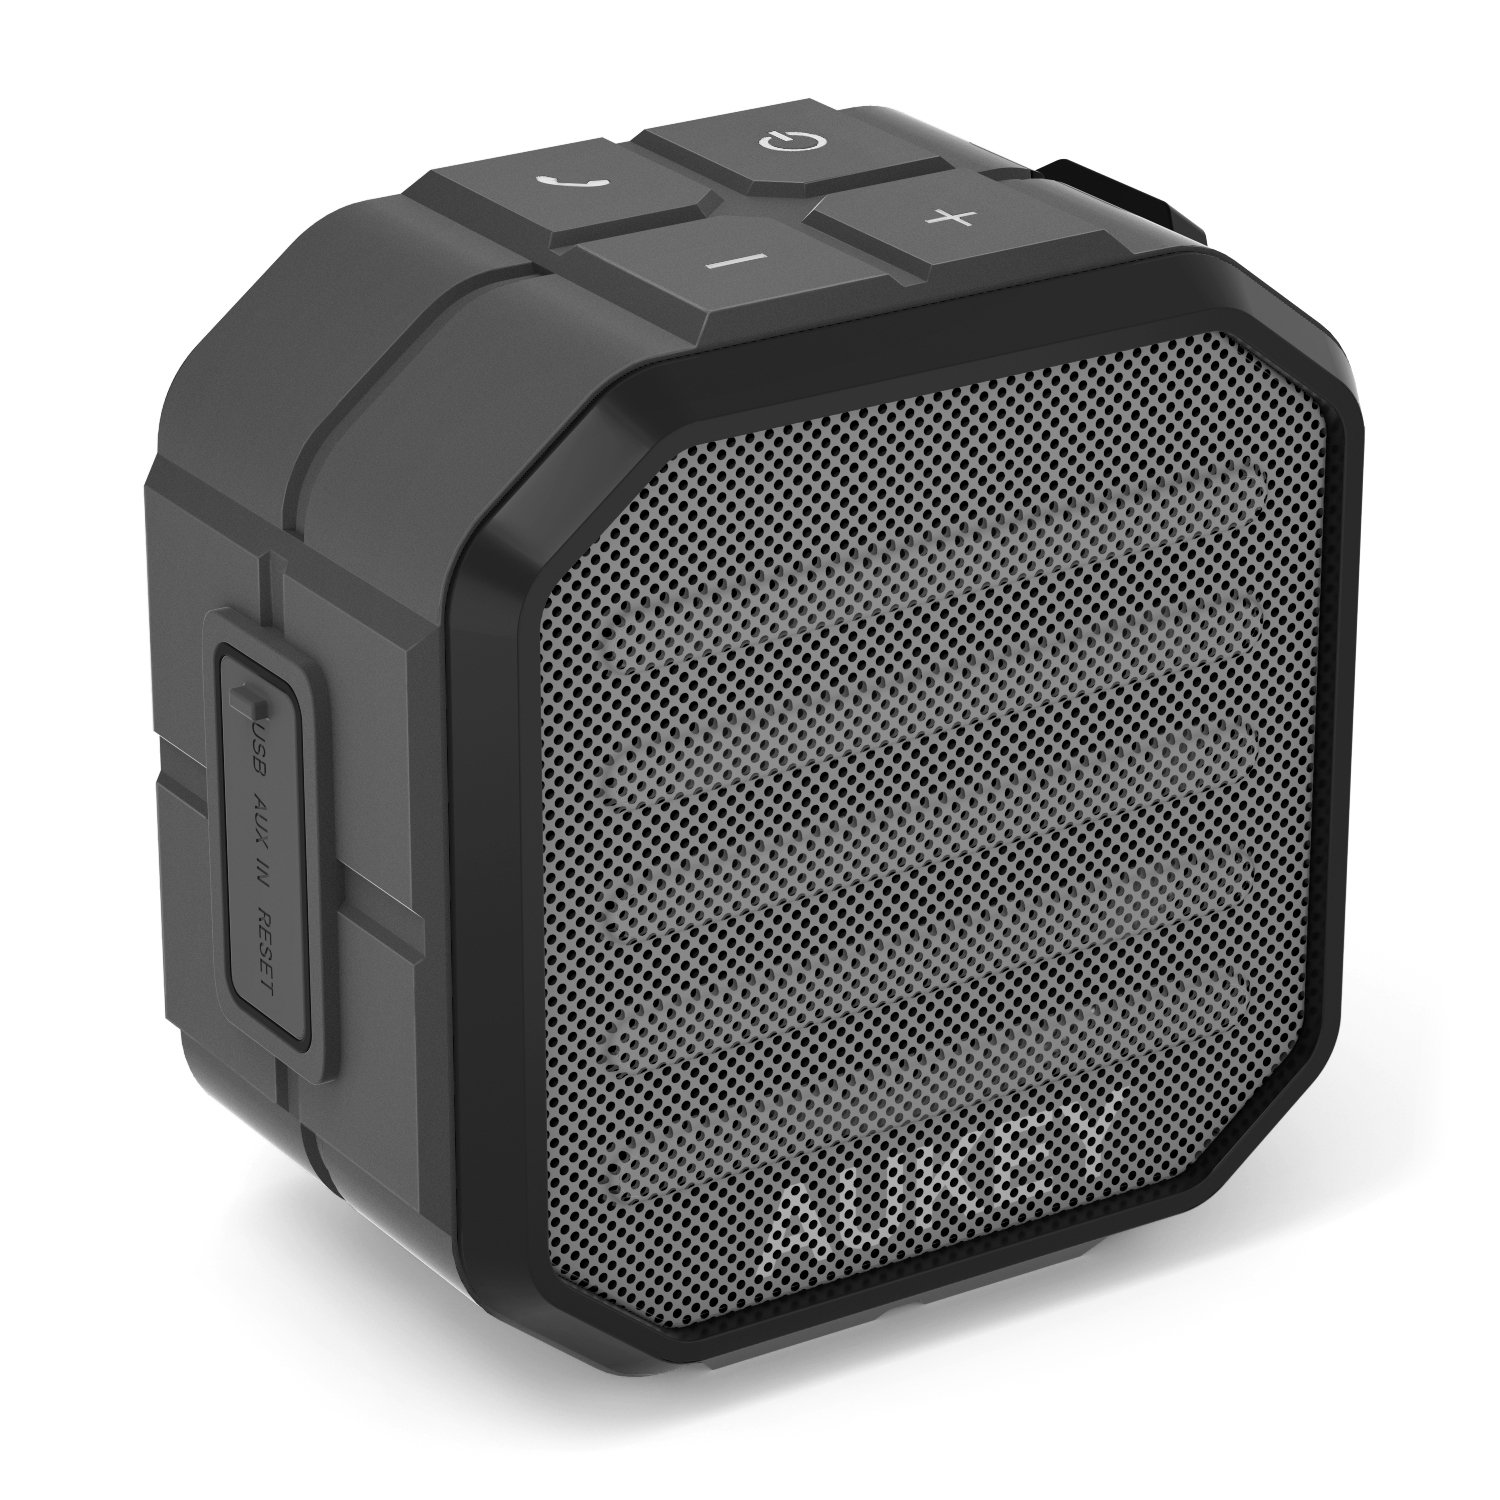 AUKEY Portable Bluetooth Speakers with Enhanced Bass and Built in Mic Outdoor Wireless Speaker Water Resistant for iPhone, iPad, Samsung by AUKEY (Image #8)